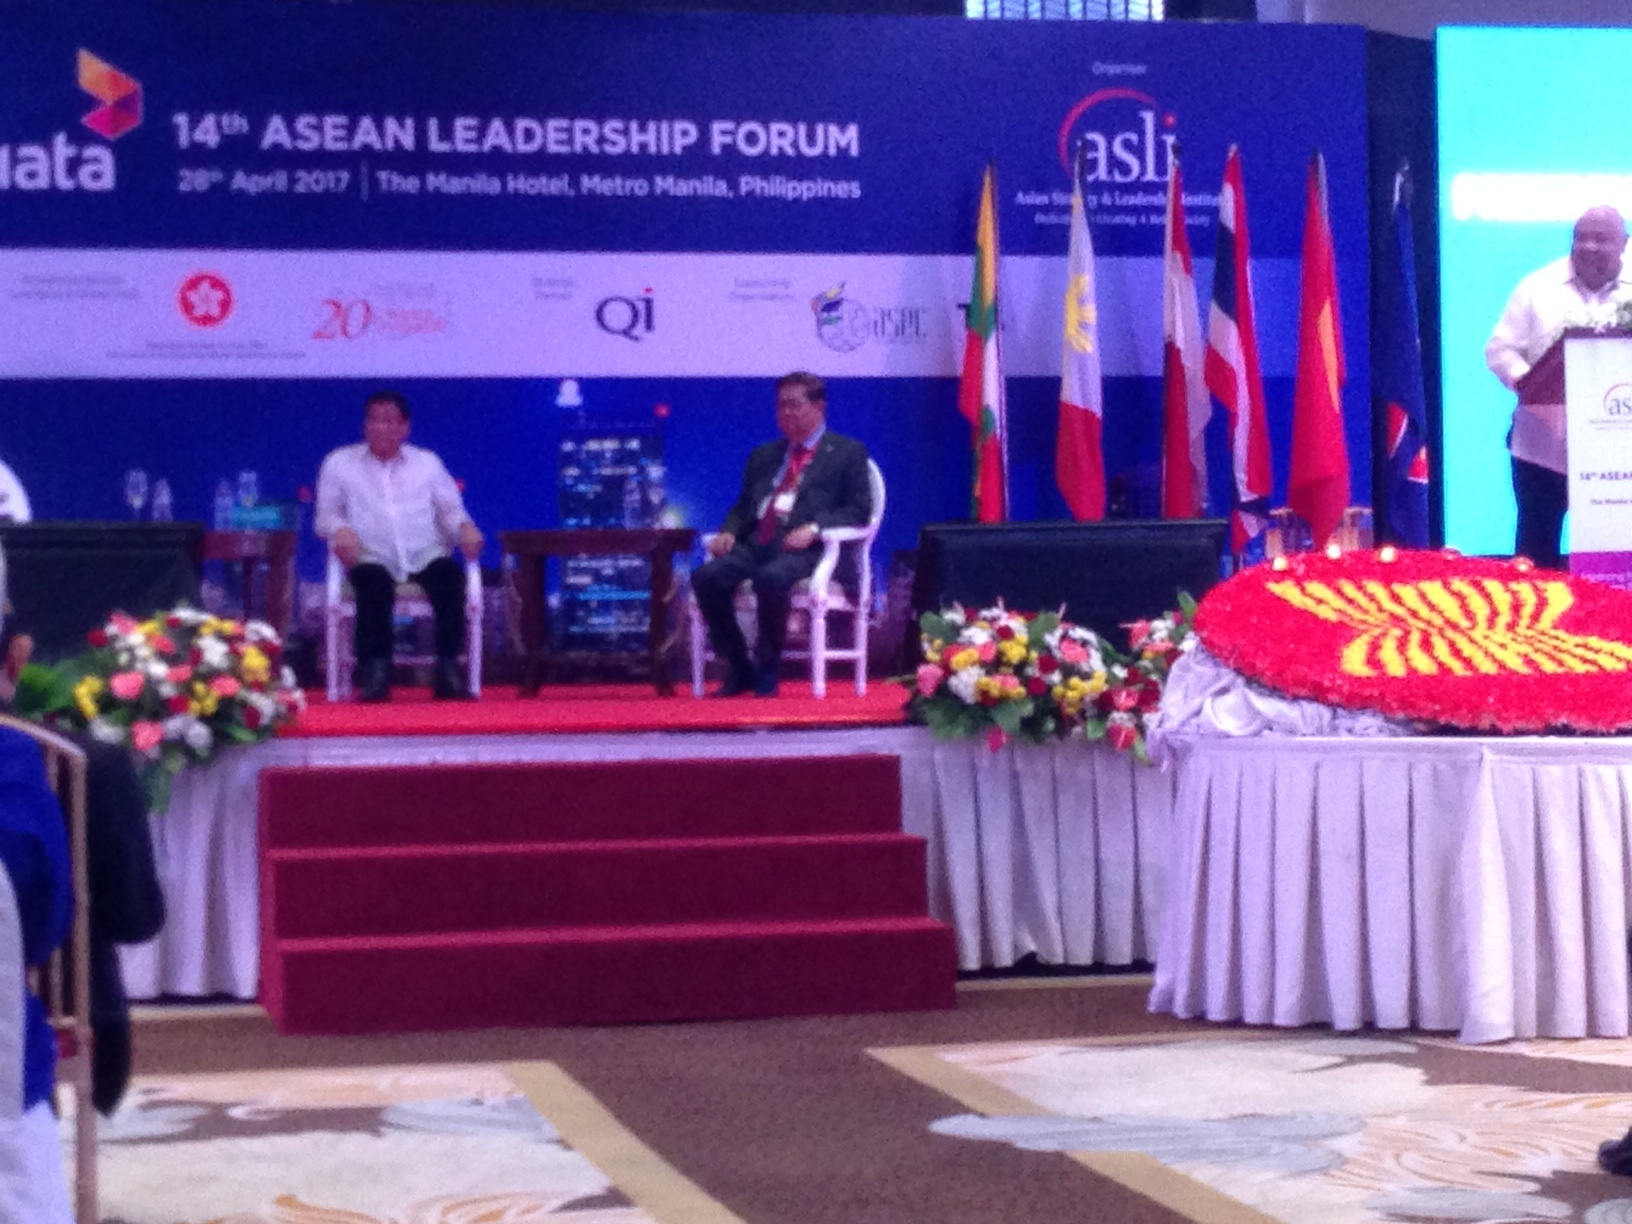 14th ASEAN Leadership Forum, Duterte, Manila Hotel, Paddy Schubert Consultants